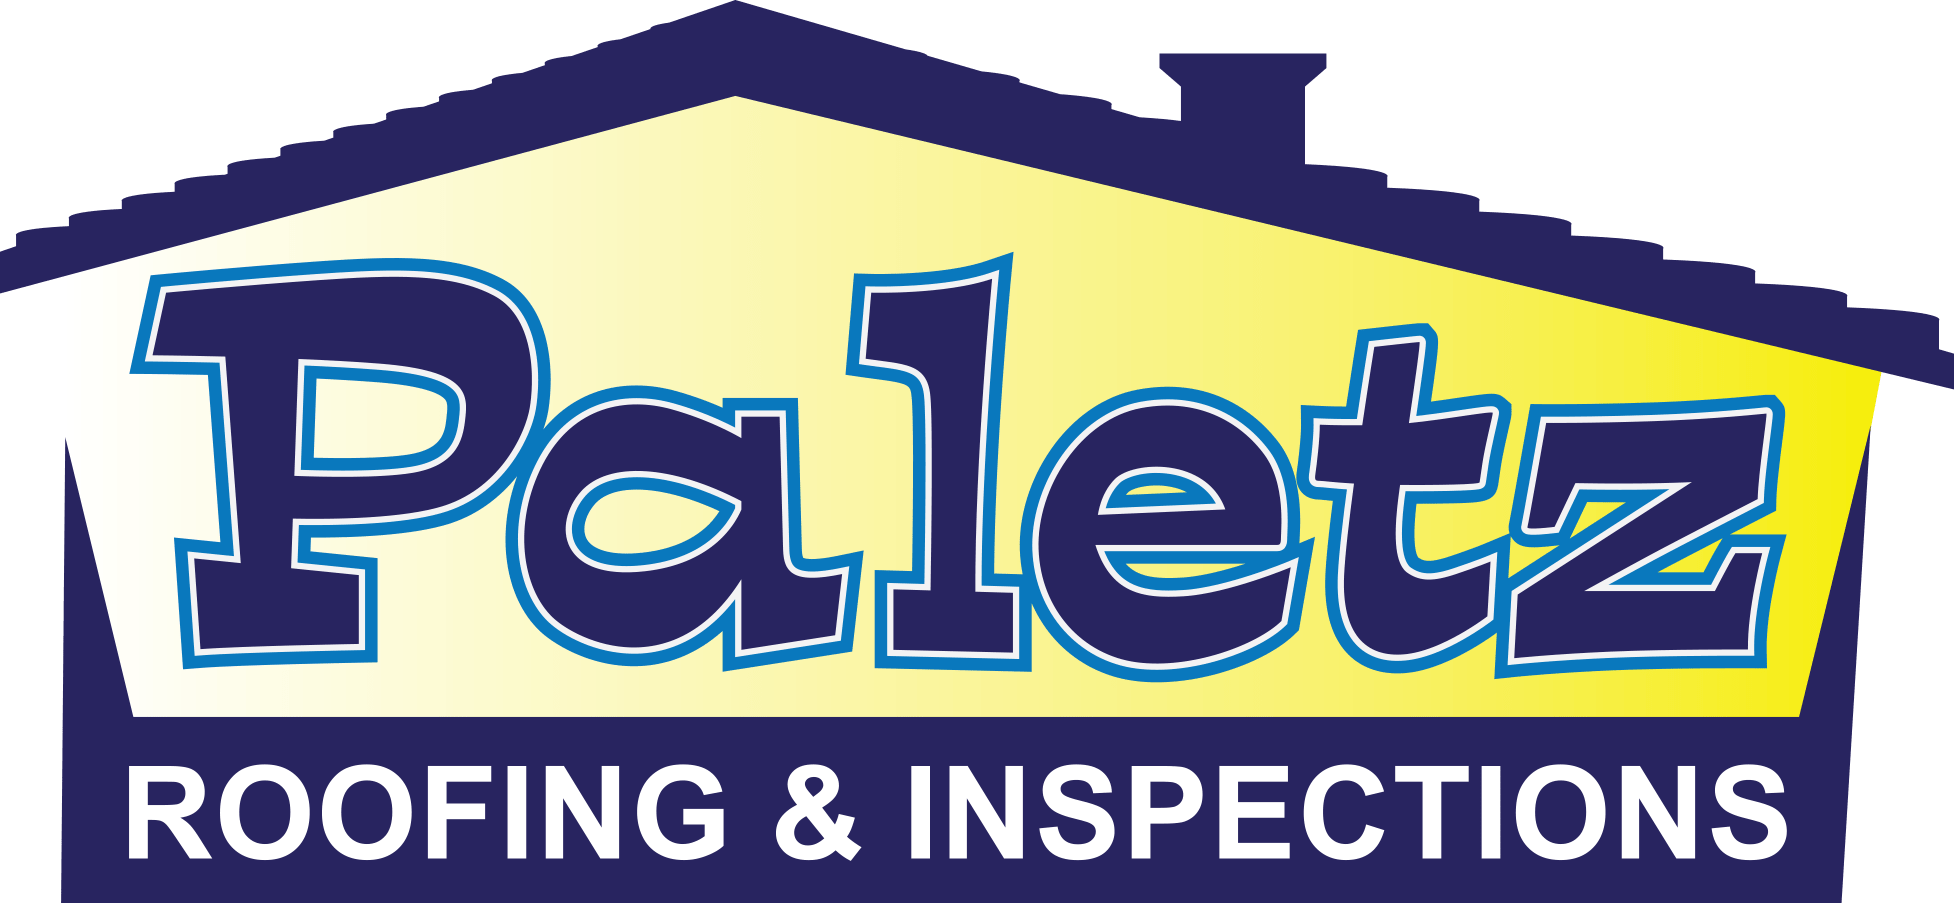 Paletz Roofing & Inspection